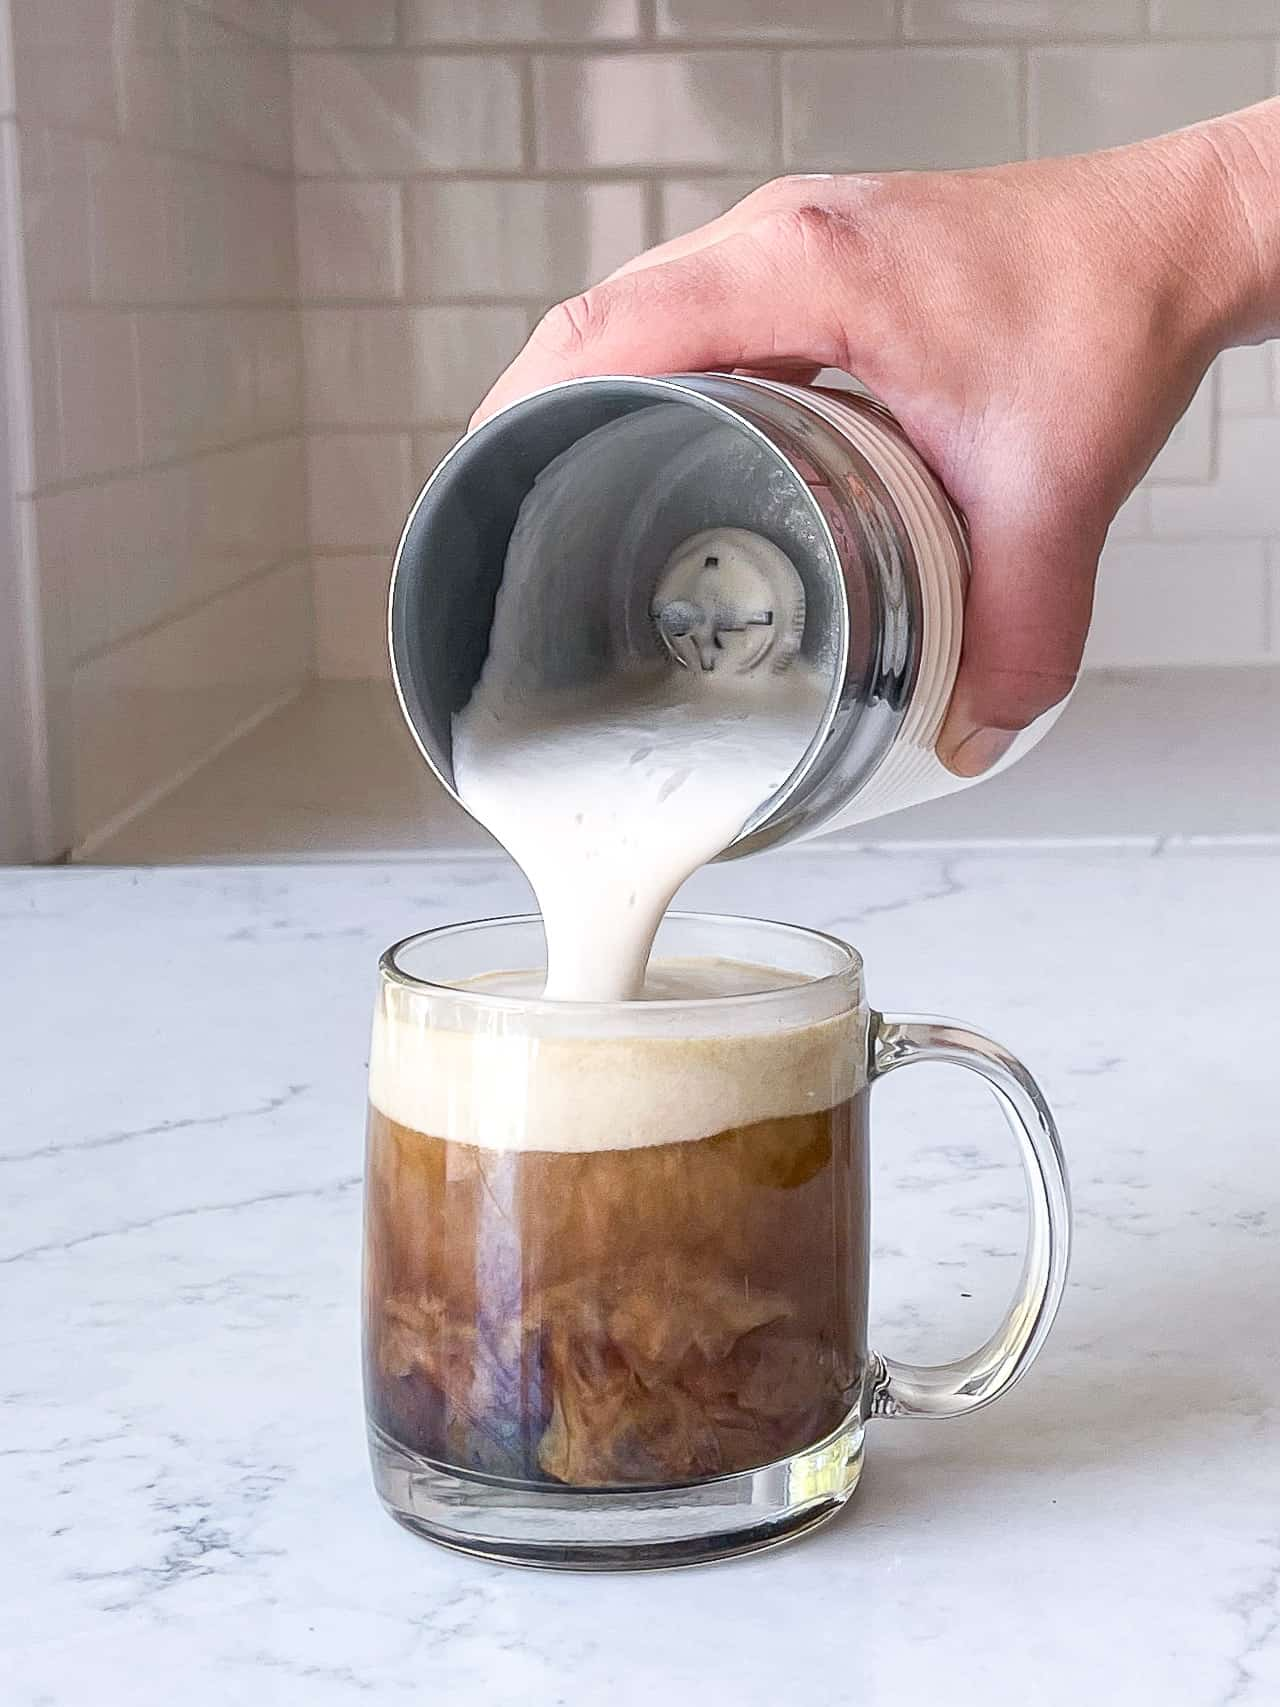 pouring frothed milk into coffee